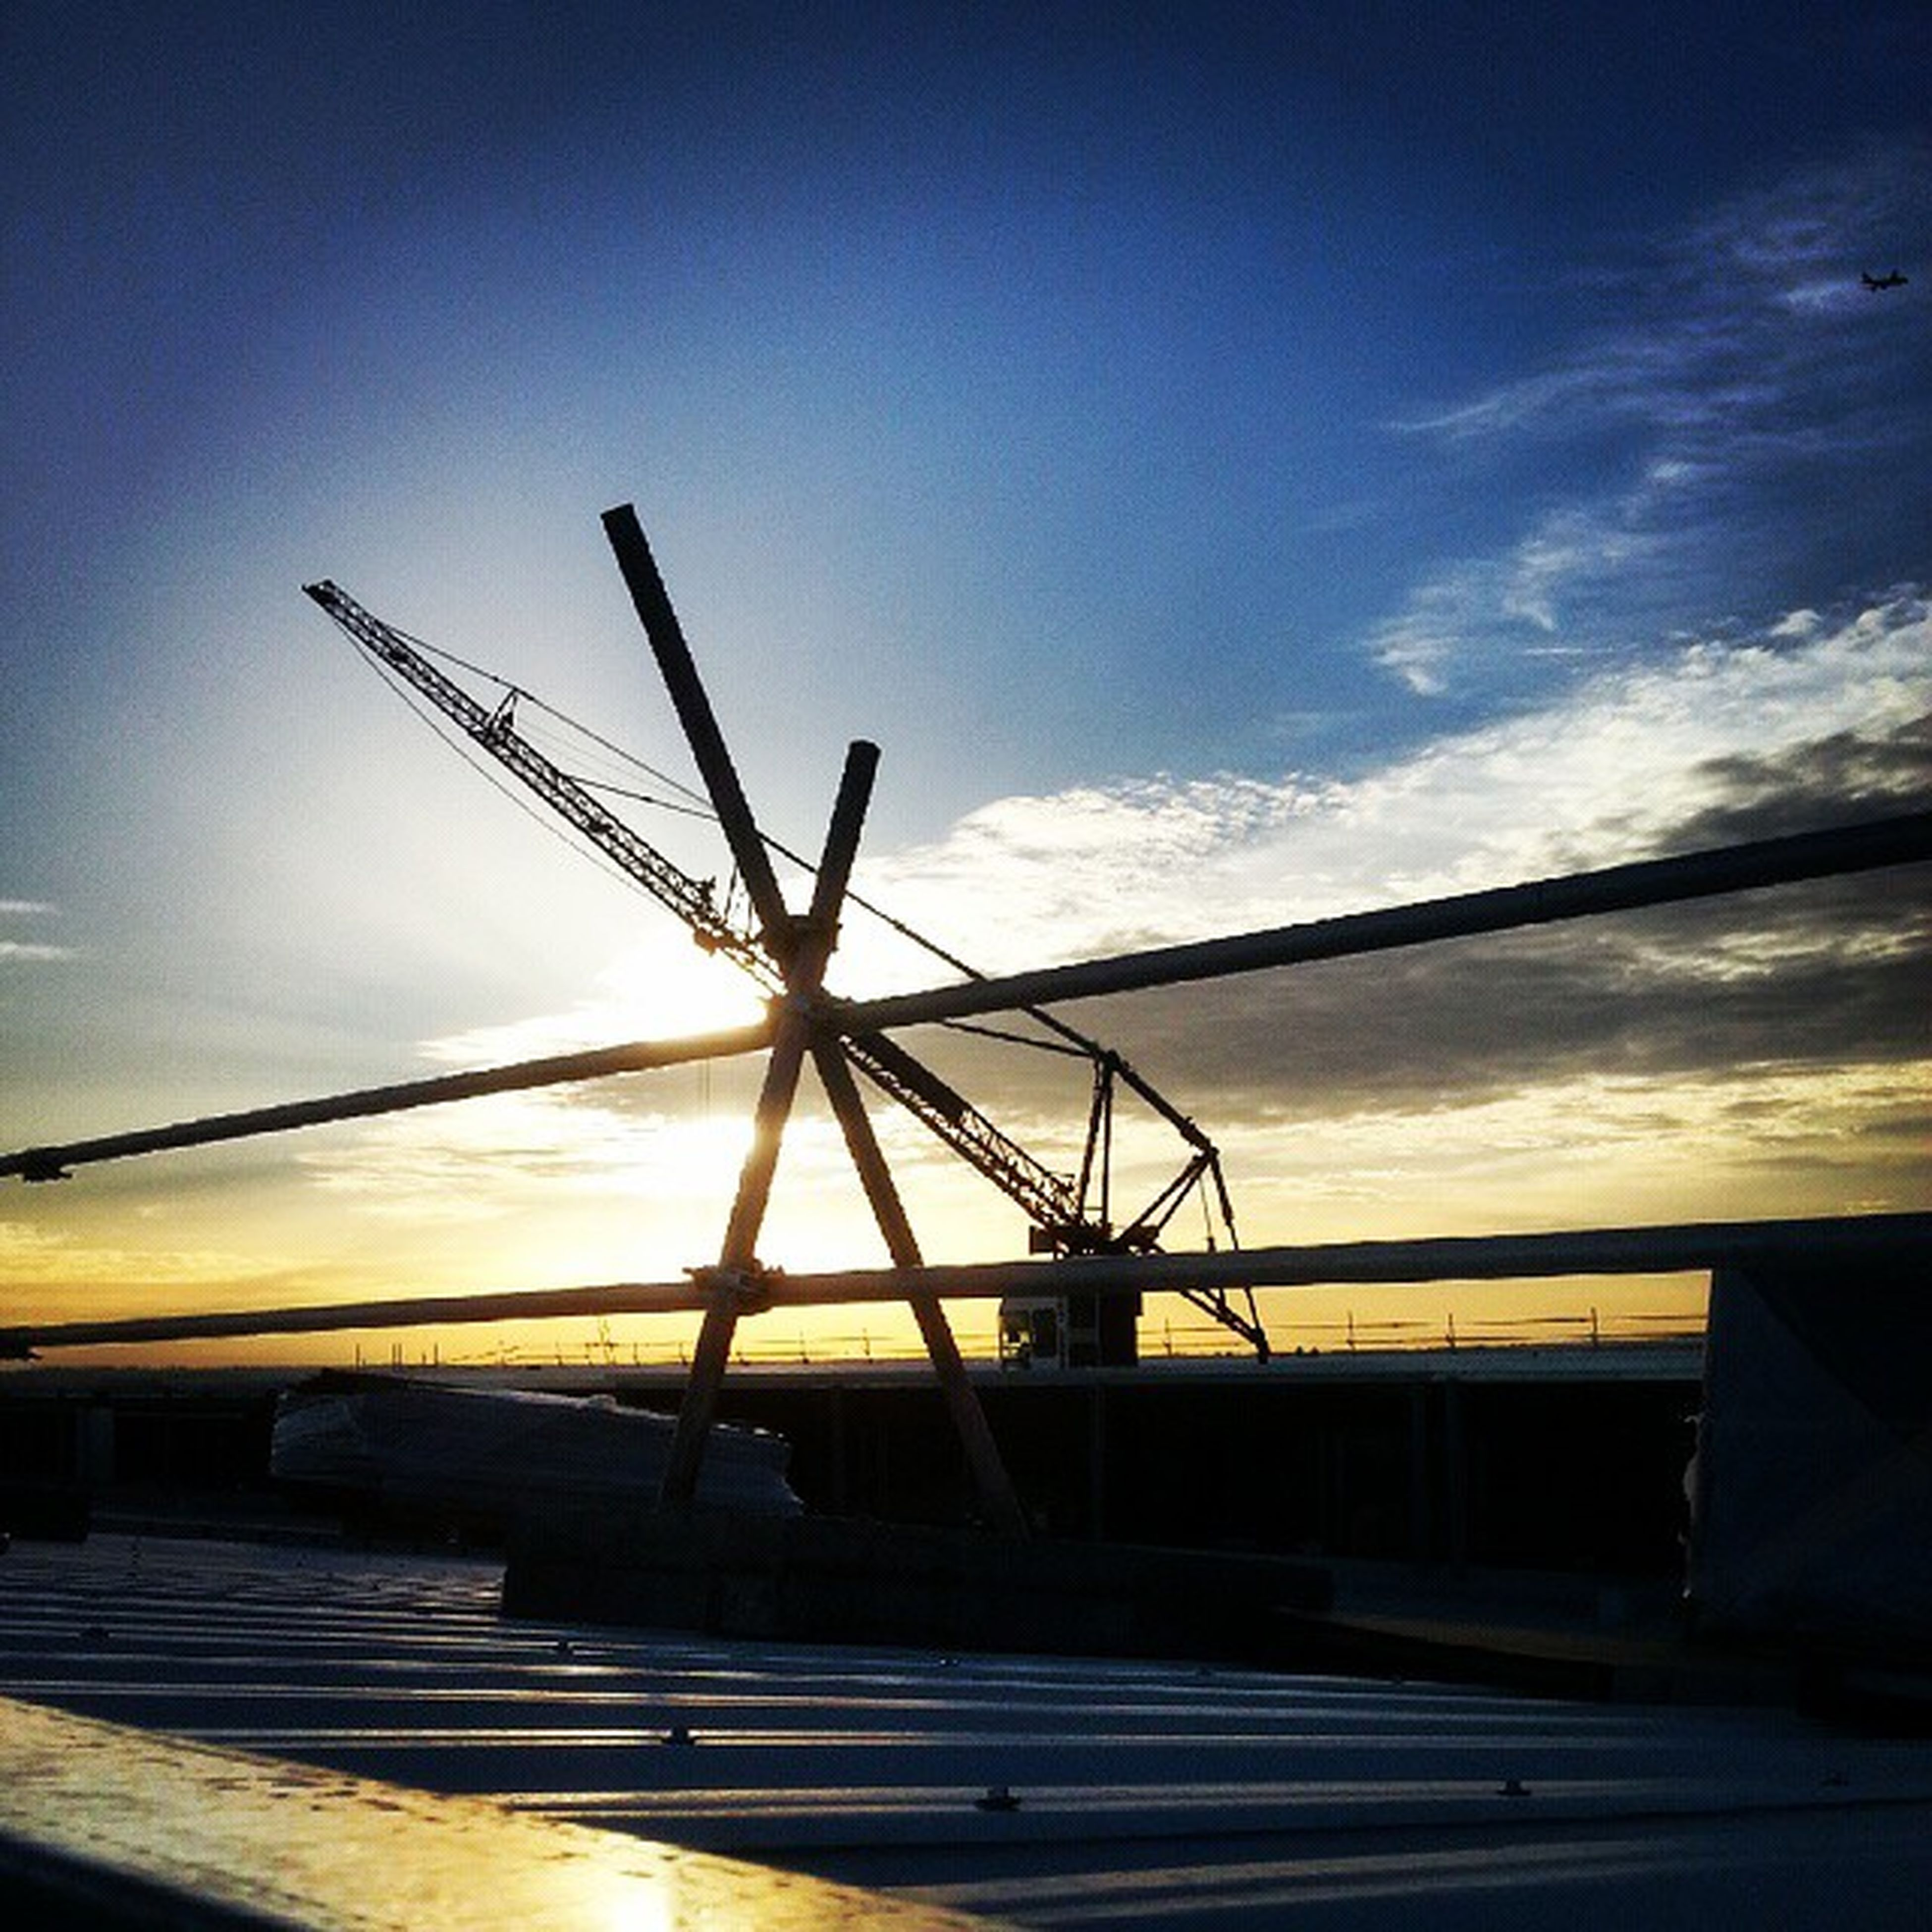 sky, sunset, transportation, crane - construction machinery, built structure, industry, mode of transport, silhouette, cloud - sky, construction site, development, architecture, outdoors, cloud, fuel and power generation, no people, dusk, low angle view, building exterior, freight transportation